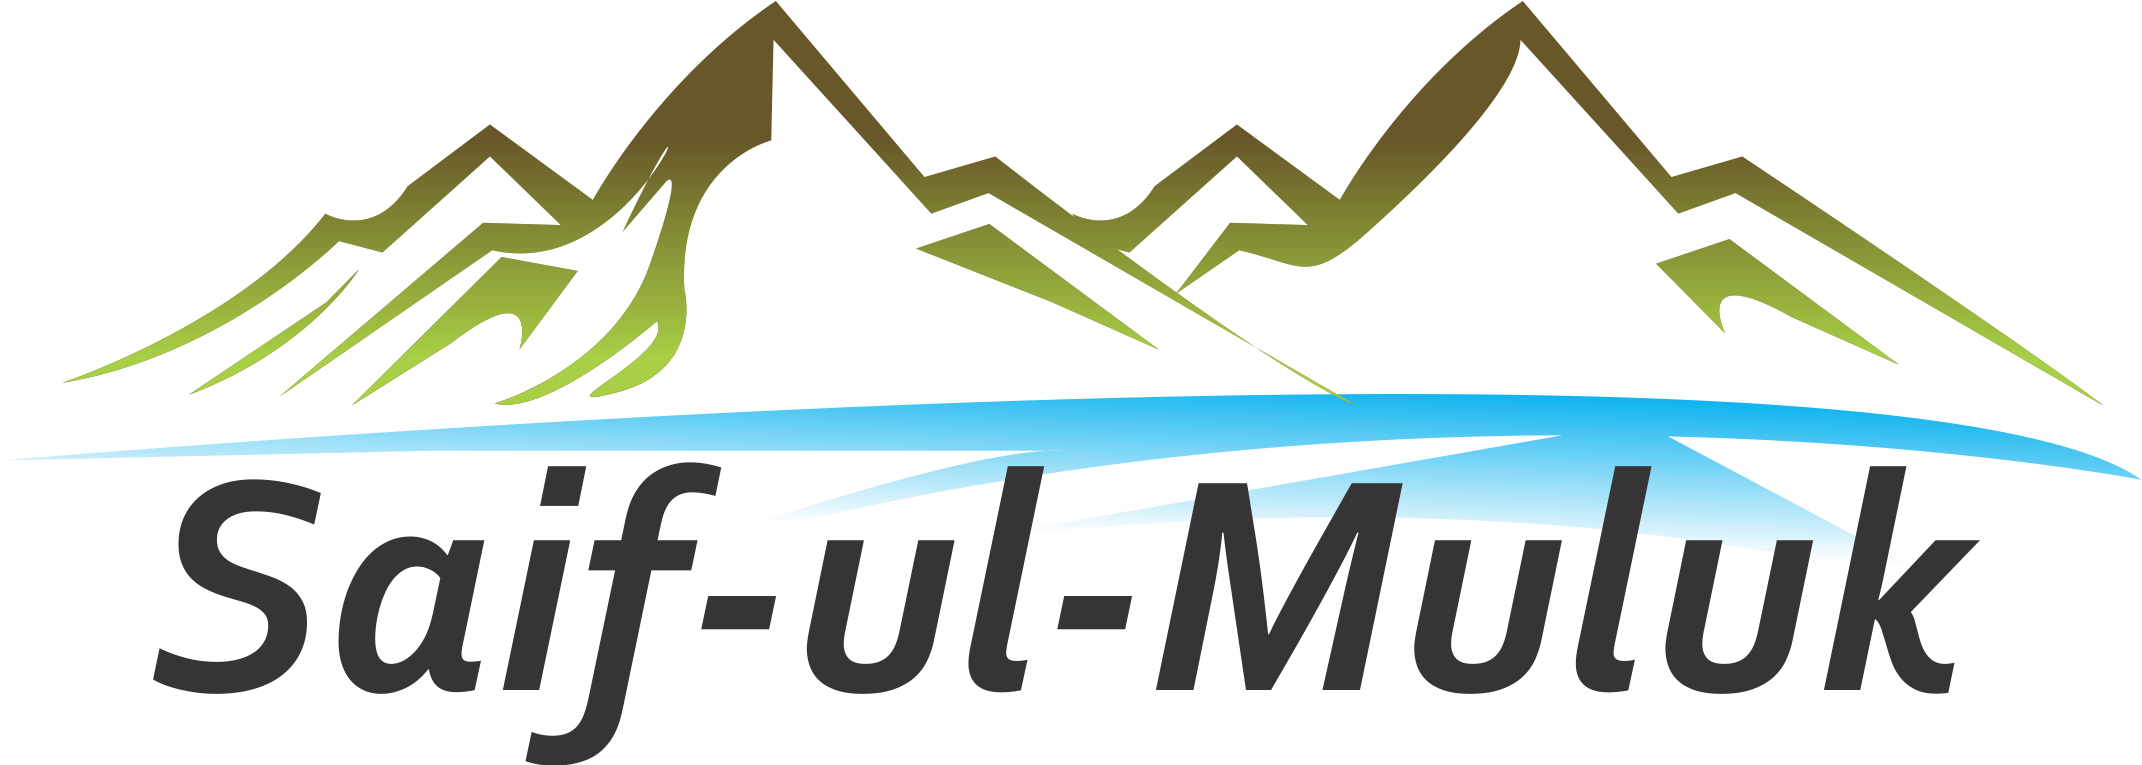 SaifulMuluk Tour and Travel Company | Saif-Ul-Muluk | tourists Archives - SaifulMuluk Tour and Travel Company | Saif-Ul-Muluk